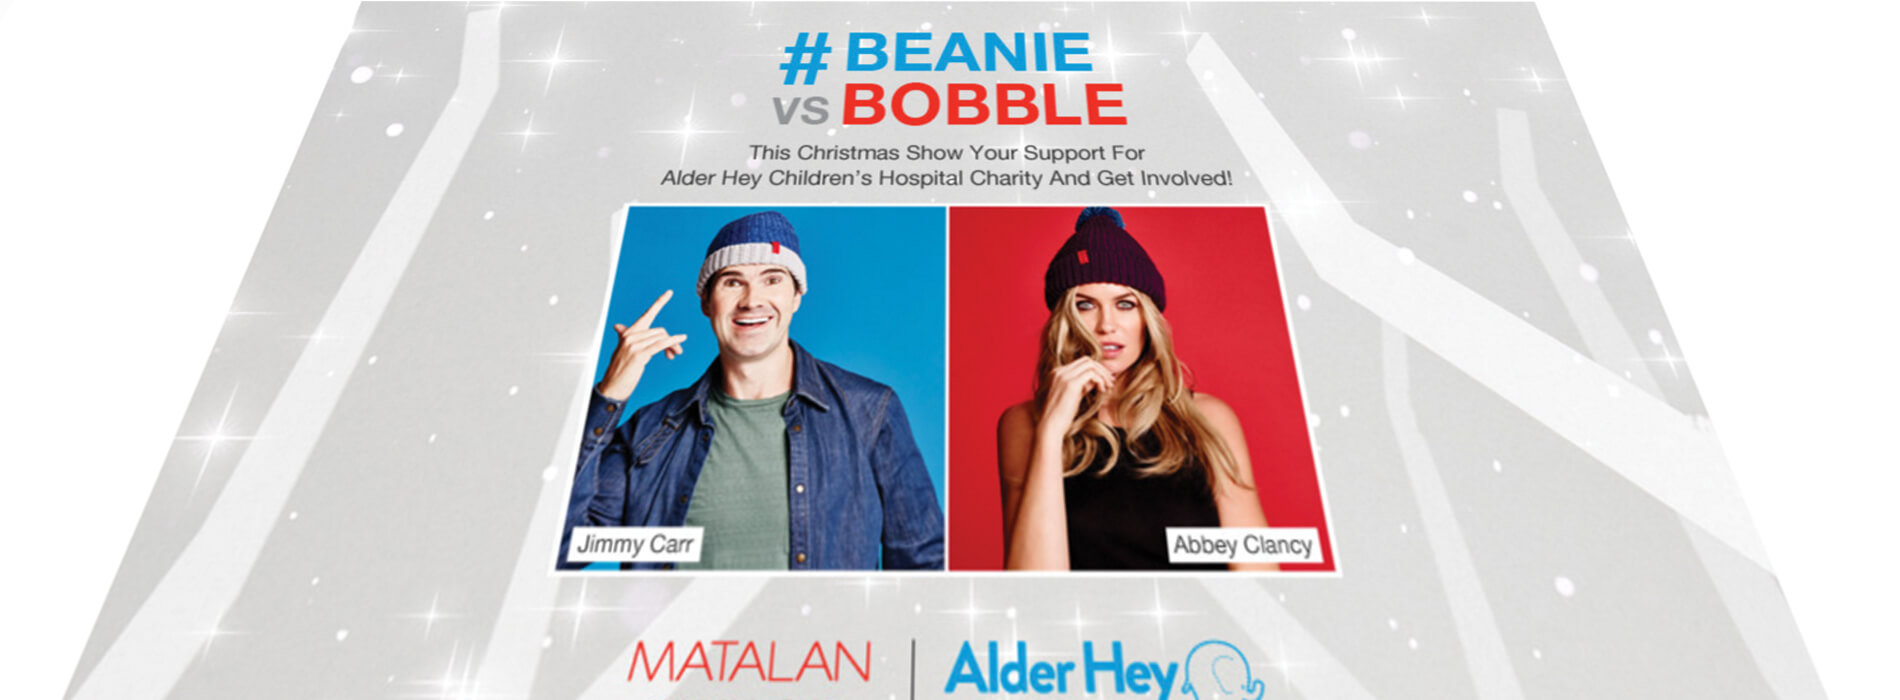 a79910e55e94b Are you a Beanie or a Bobble